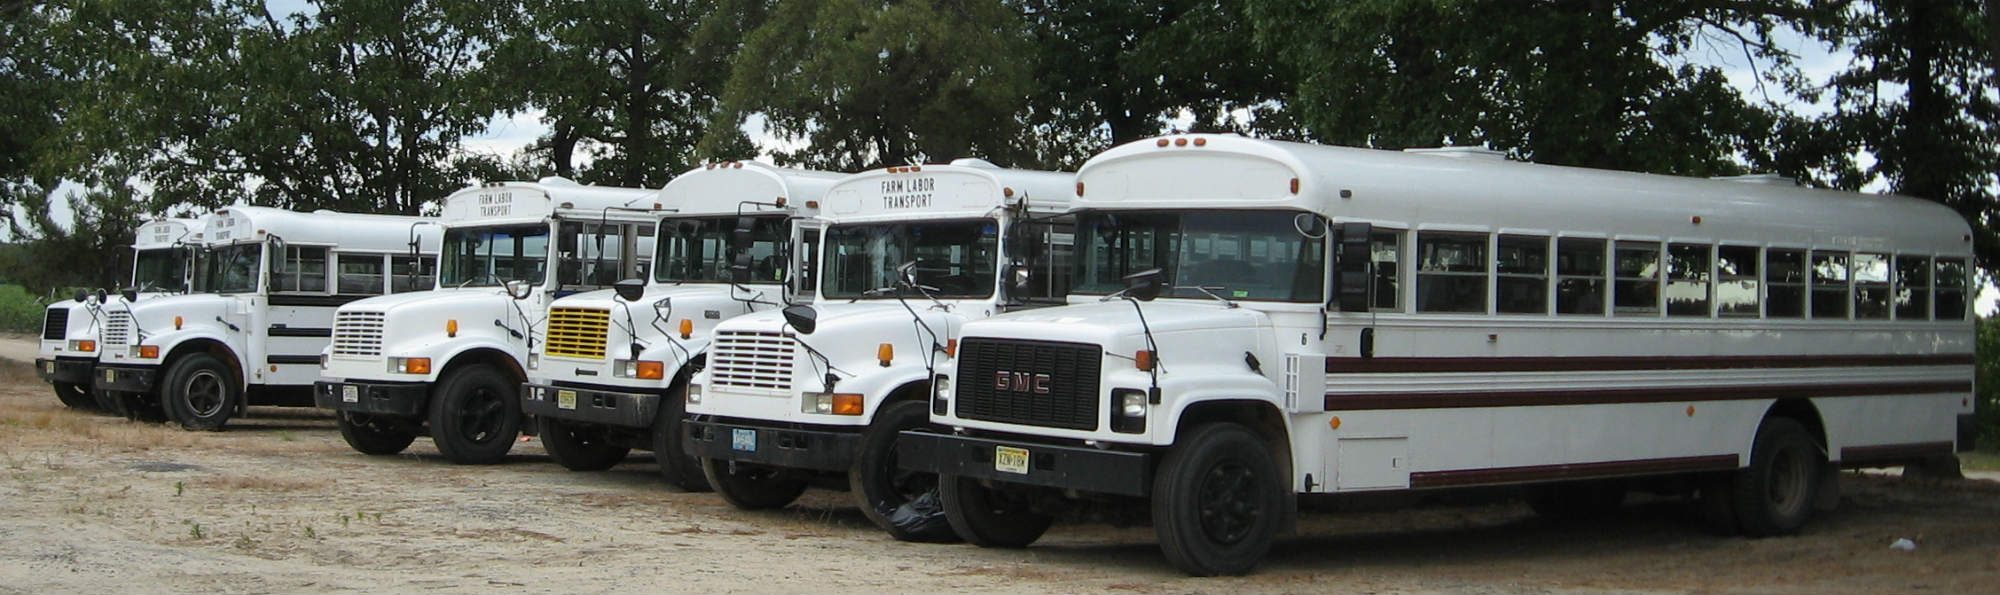 six white farm labor buses